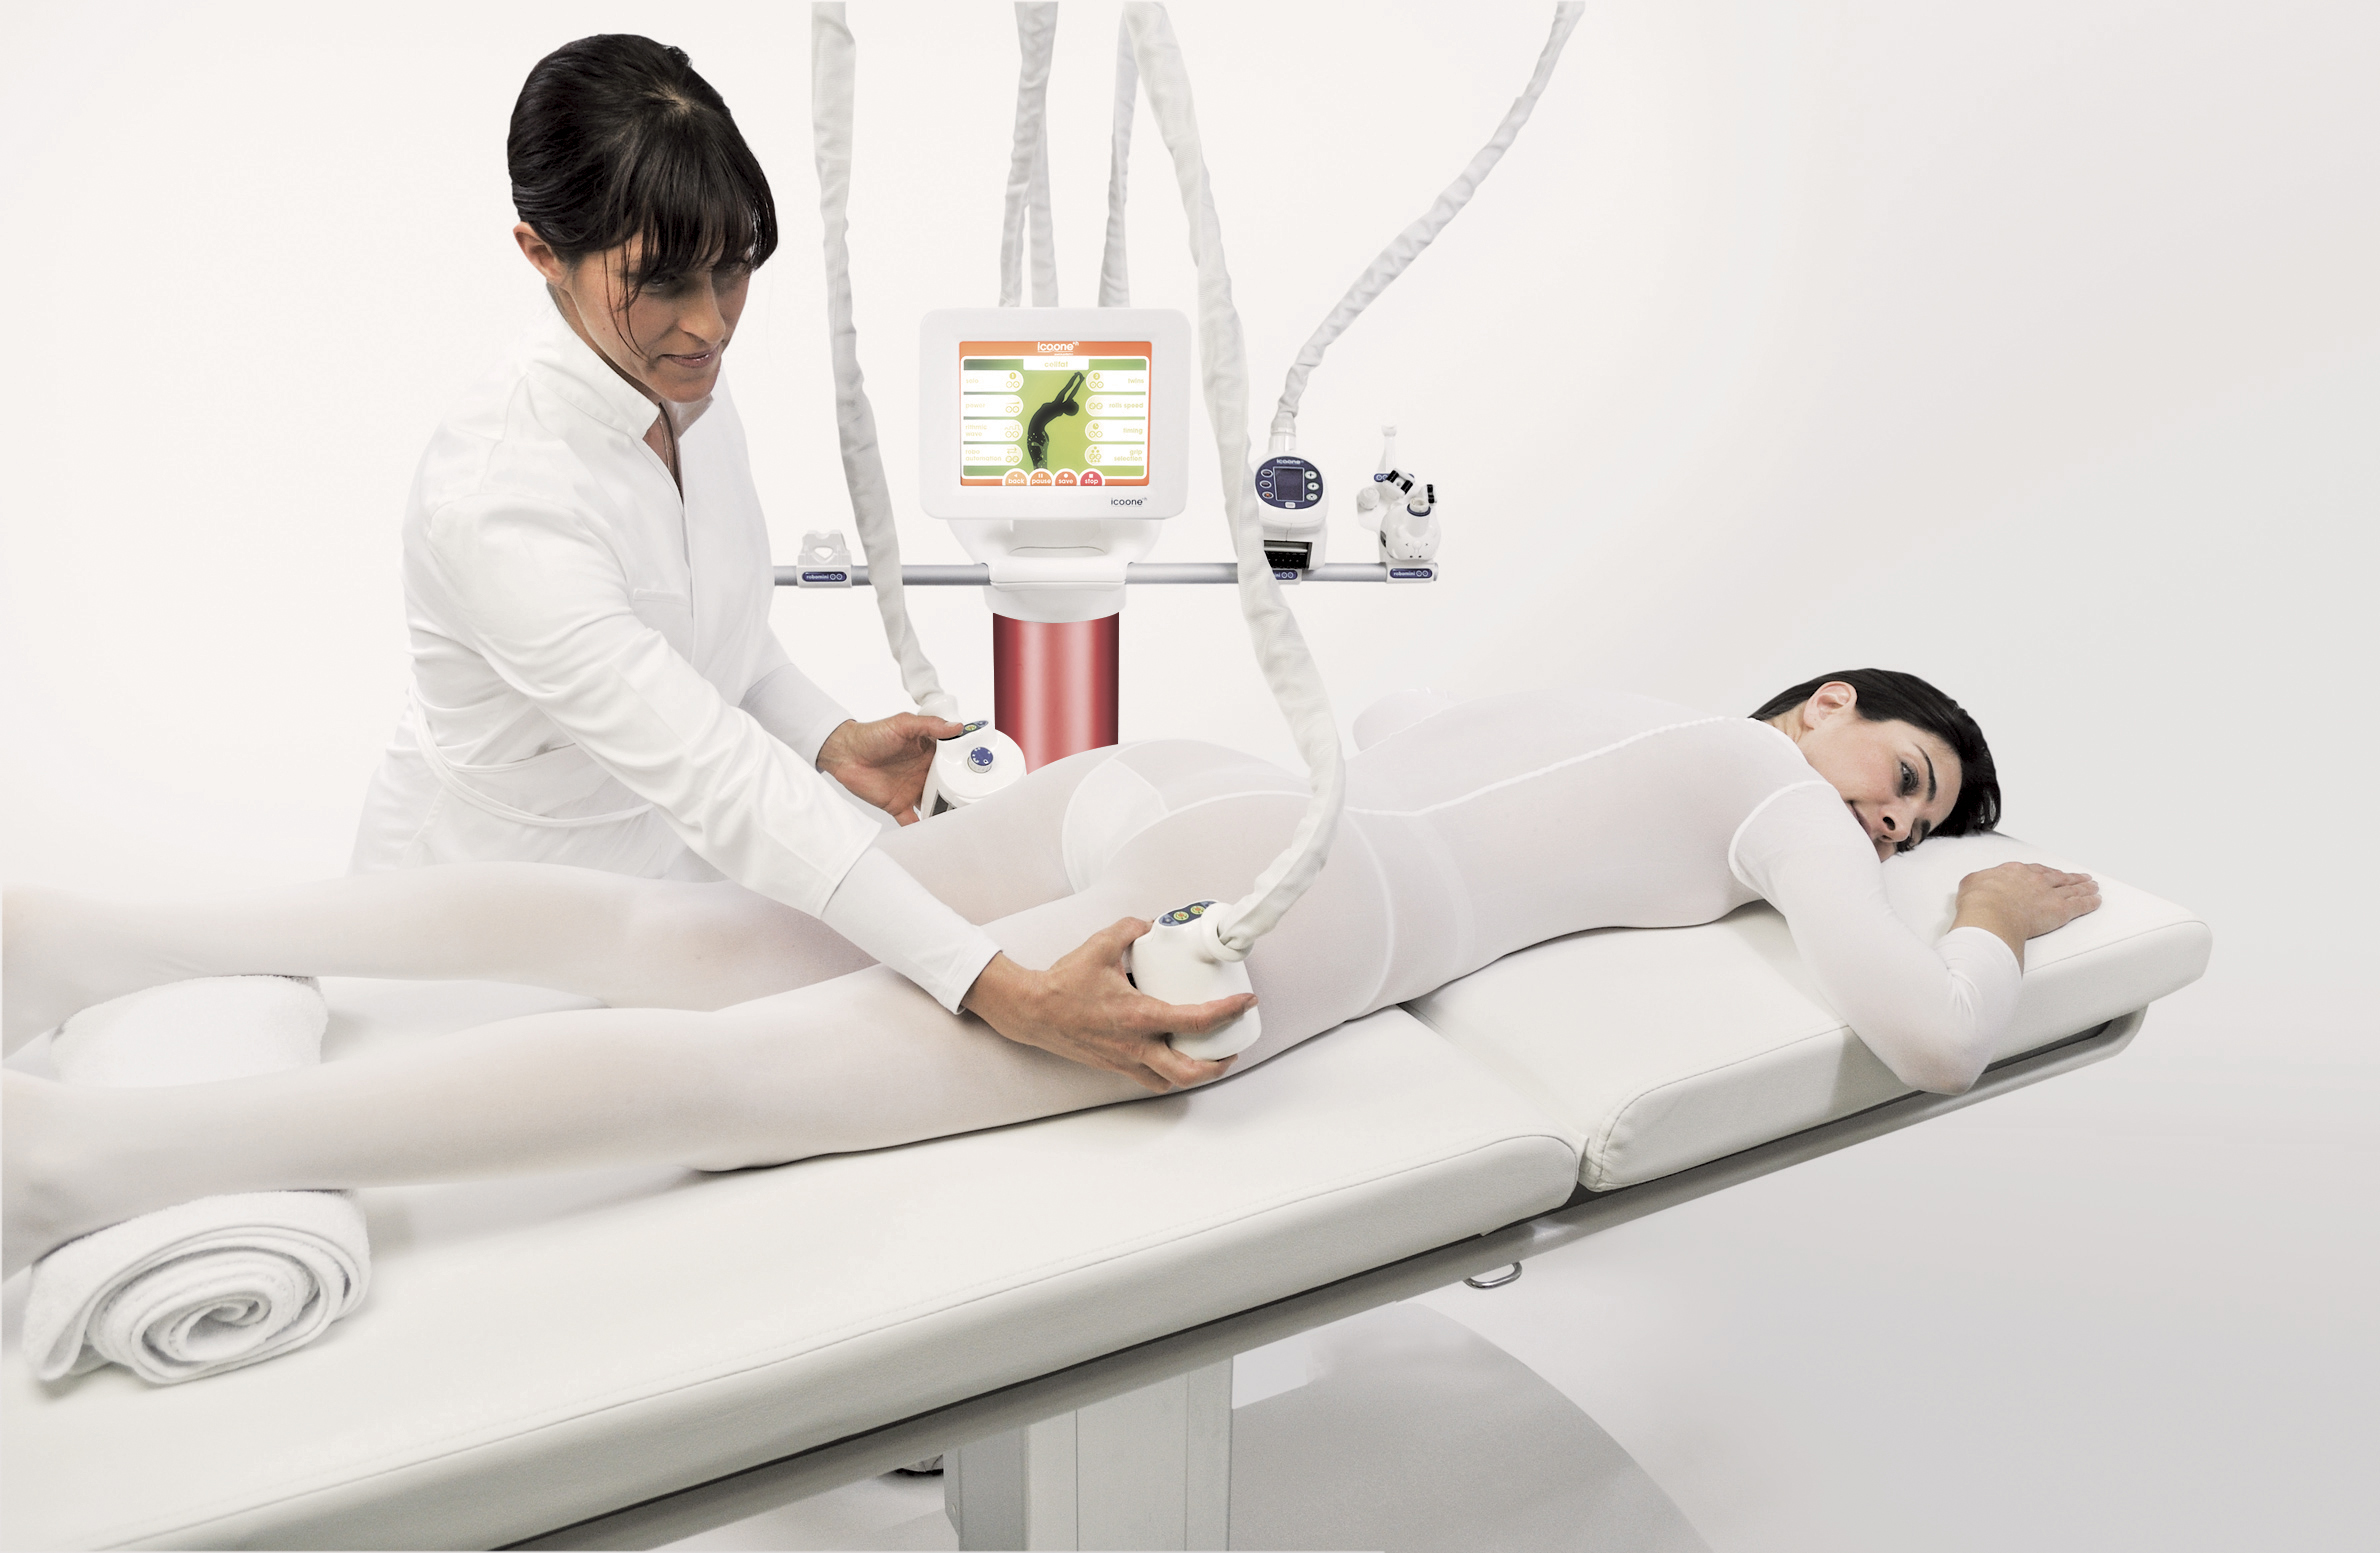 http://www.reklamamiami.com/images/stories/--2020/laser_treatment.jpg